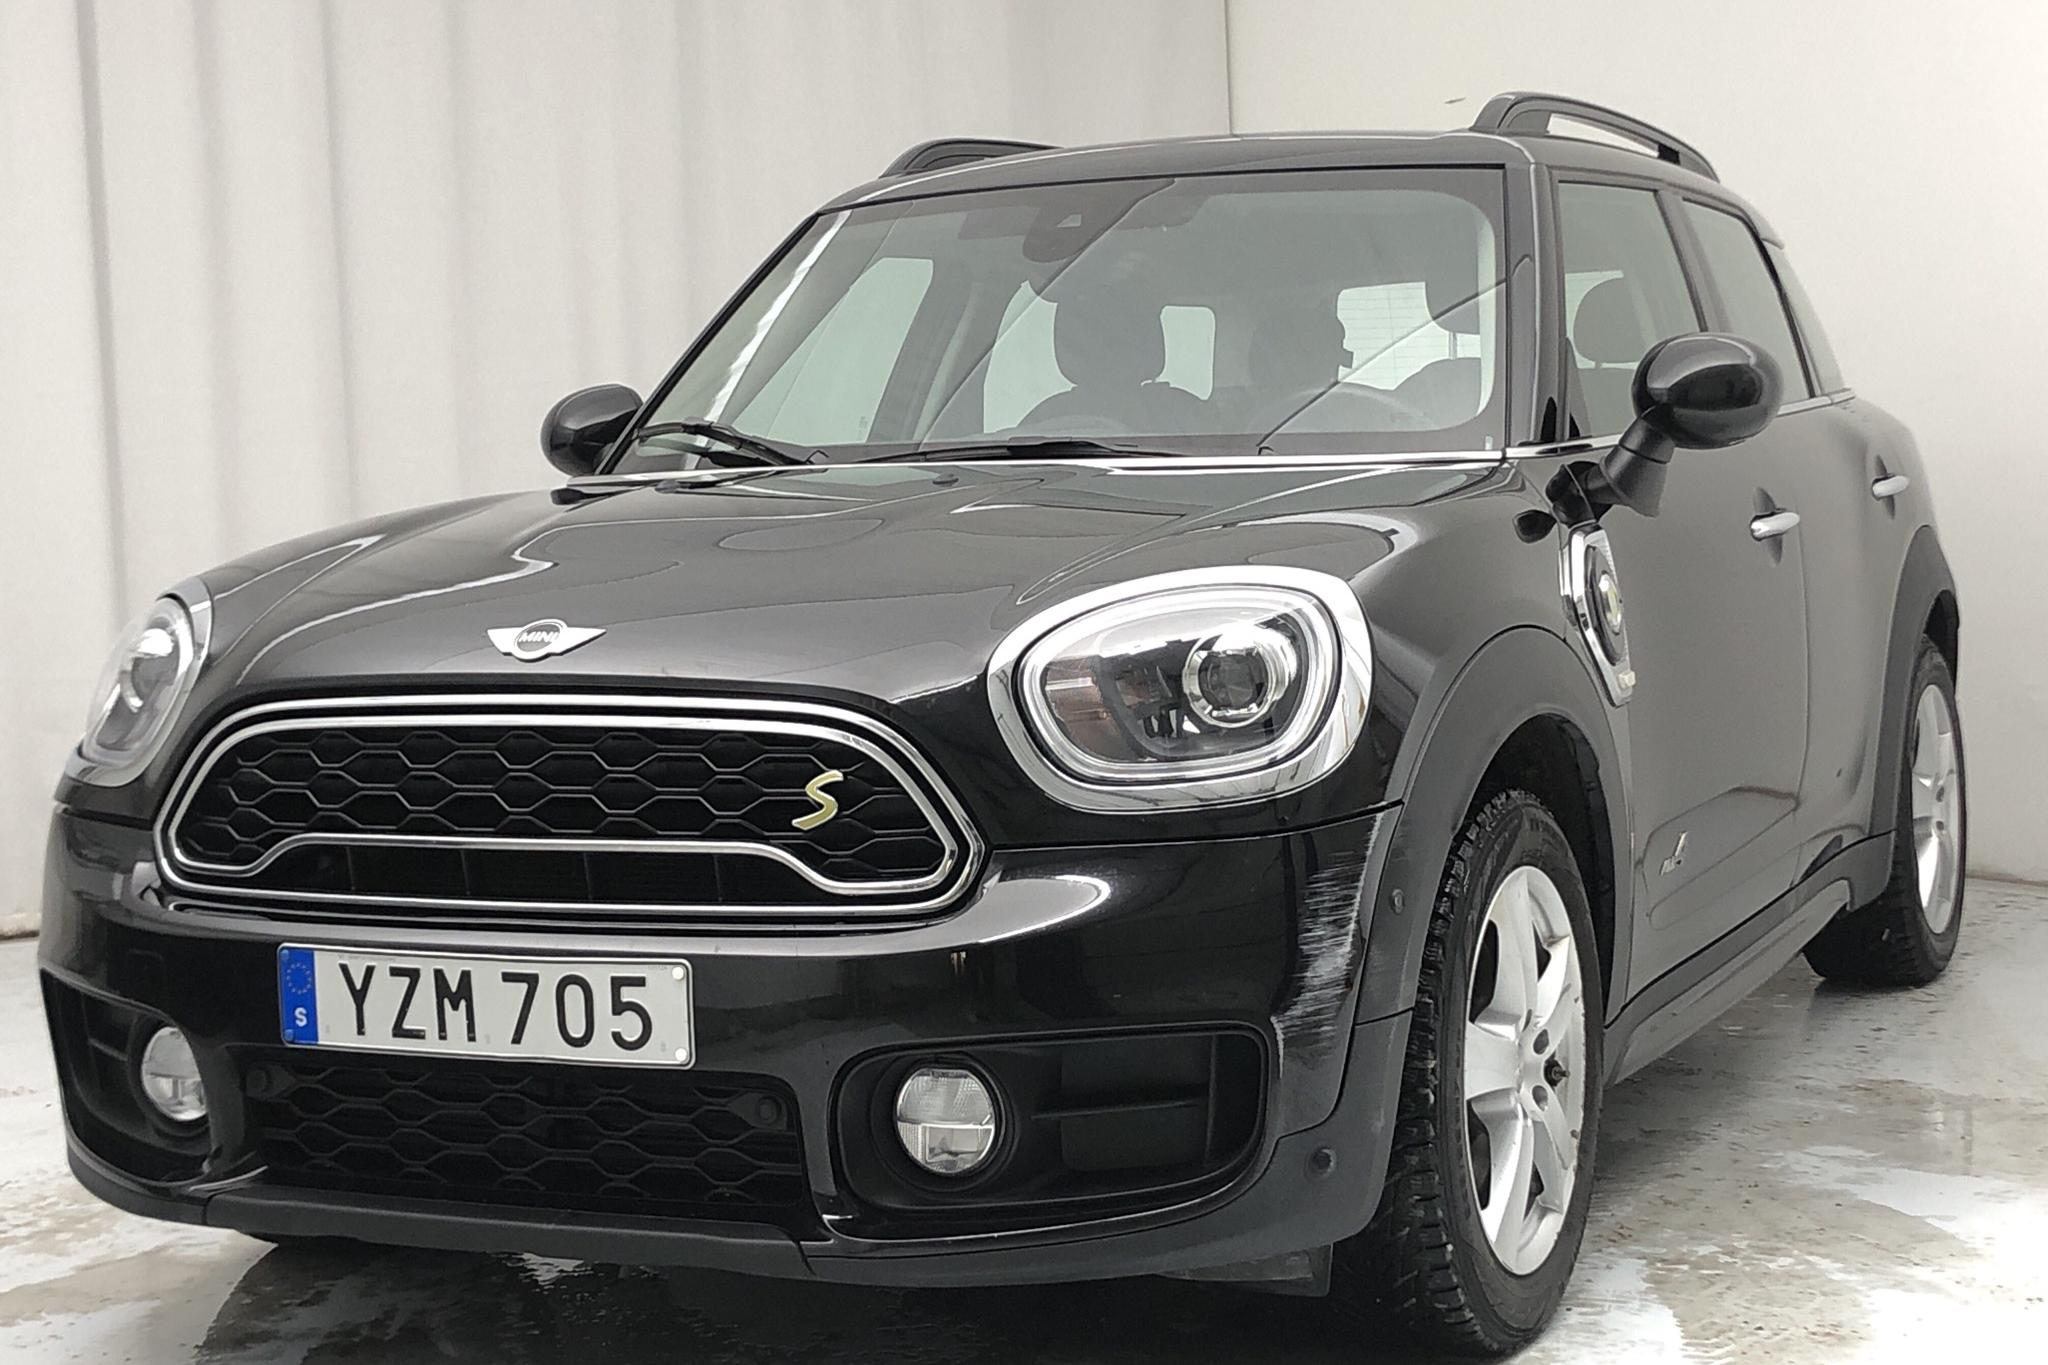 MINI Cooper S E ALL4 Countryman, F60 (224hk) - 79 240 km - Automatic - black - 2018